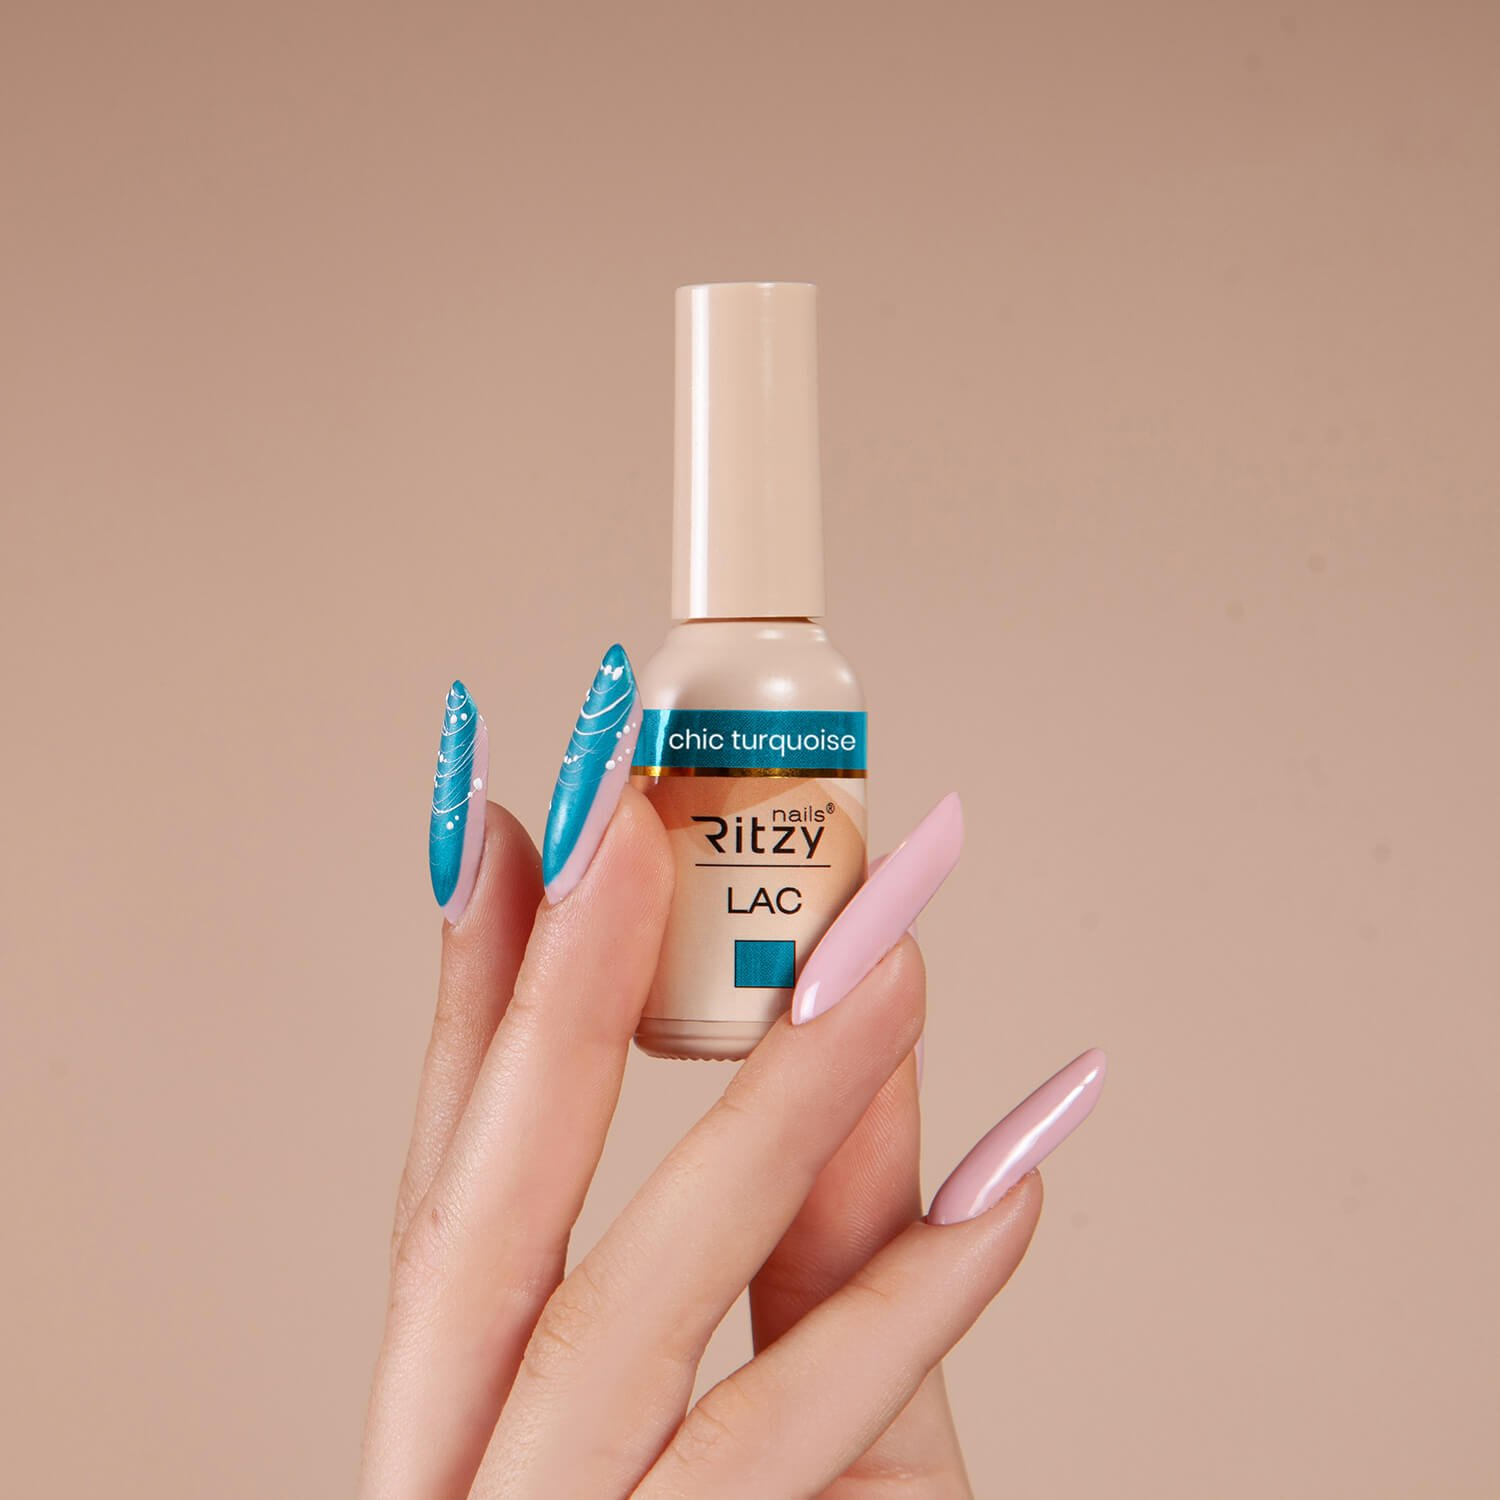 Chic Turquoise Ritzy LAC